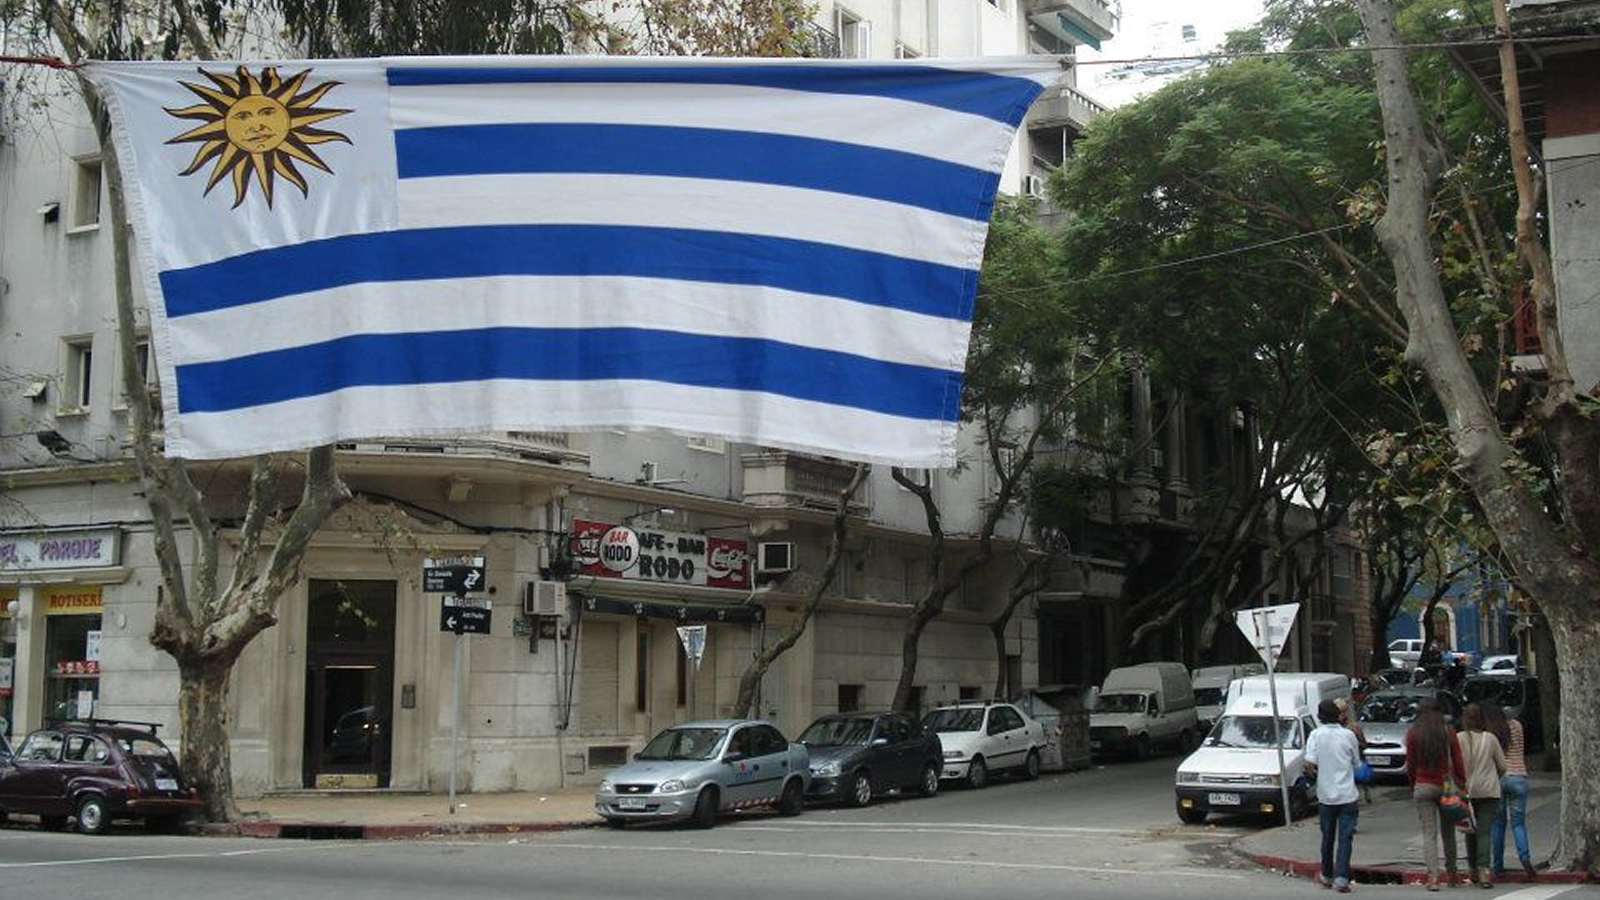 Uruguayan Flag Hanging Above a City Street